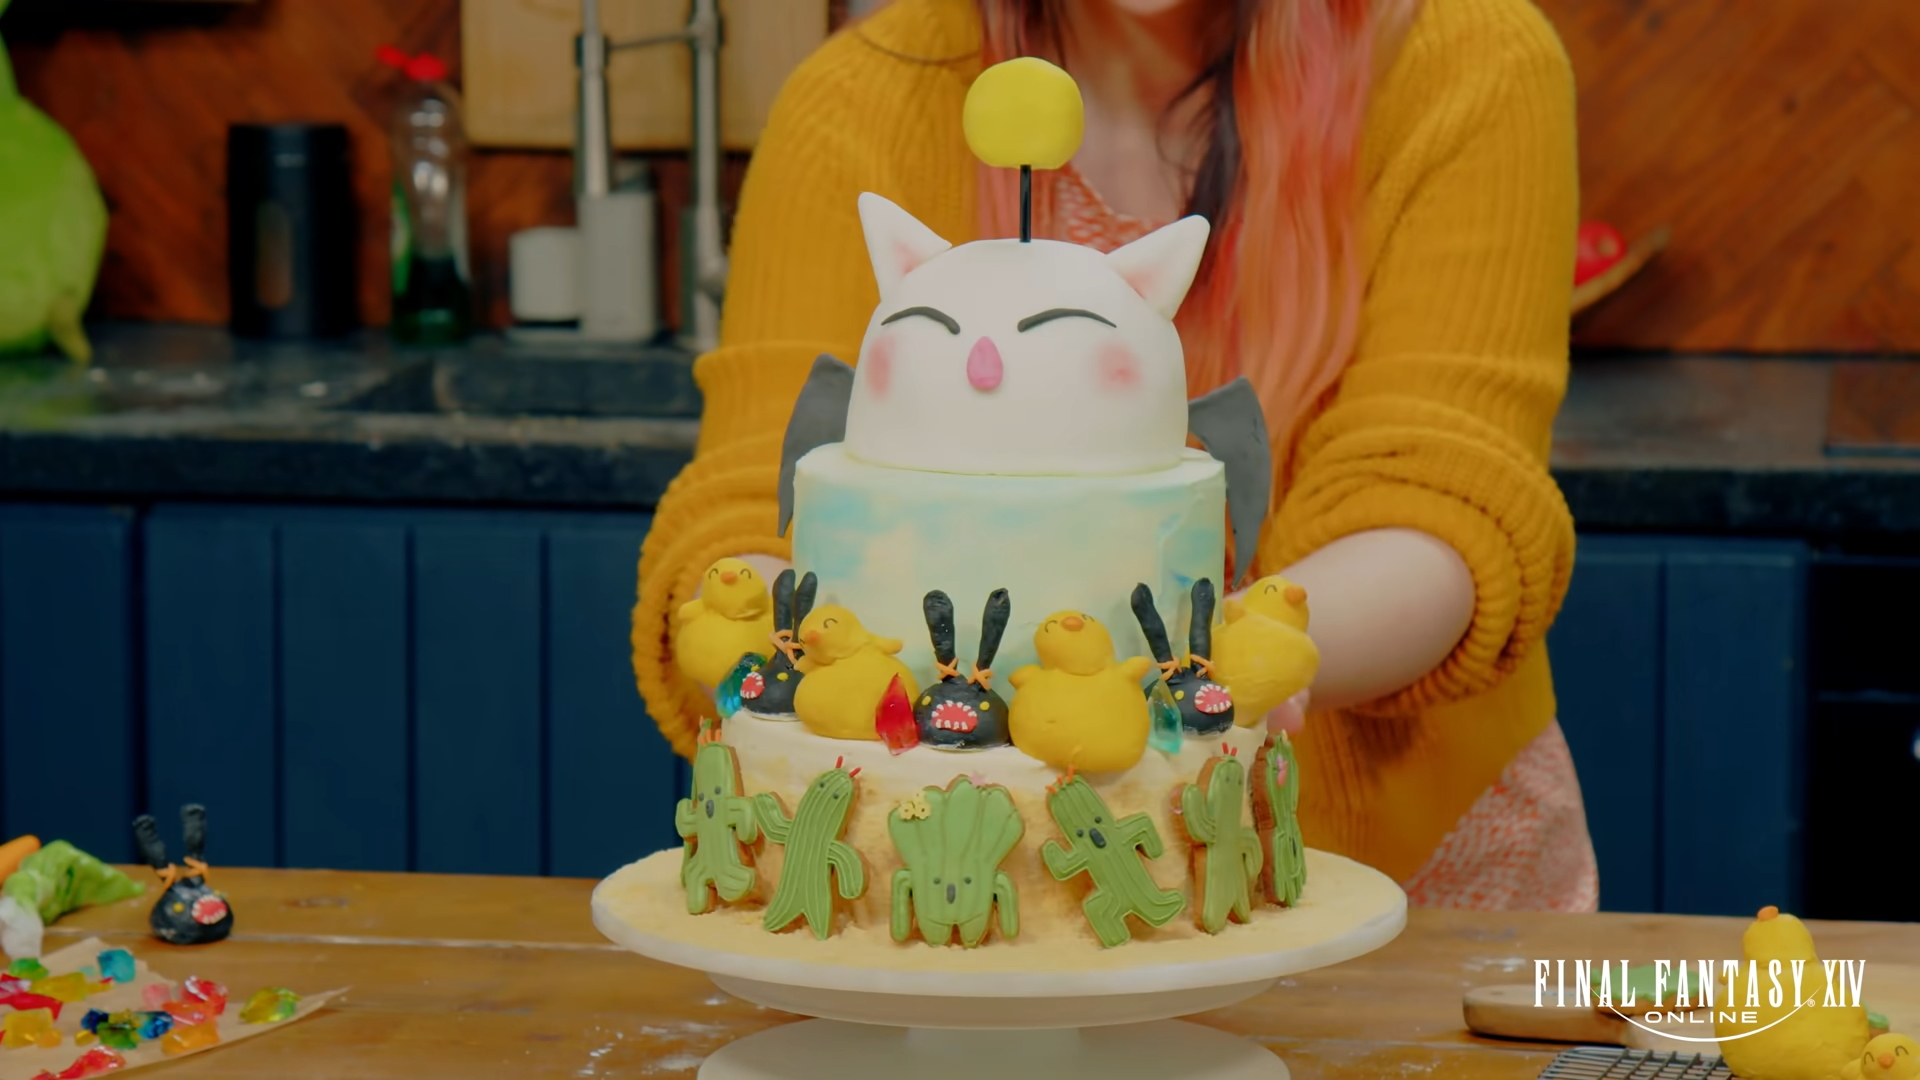 Final Fantssy XIV cake featuring Spriggans, Cactuars, Chocobos, and a moogle.